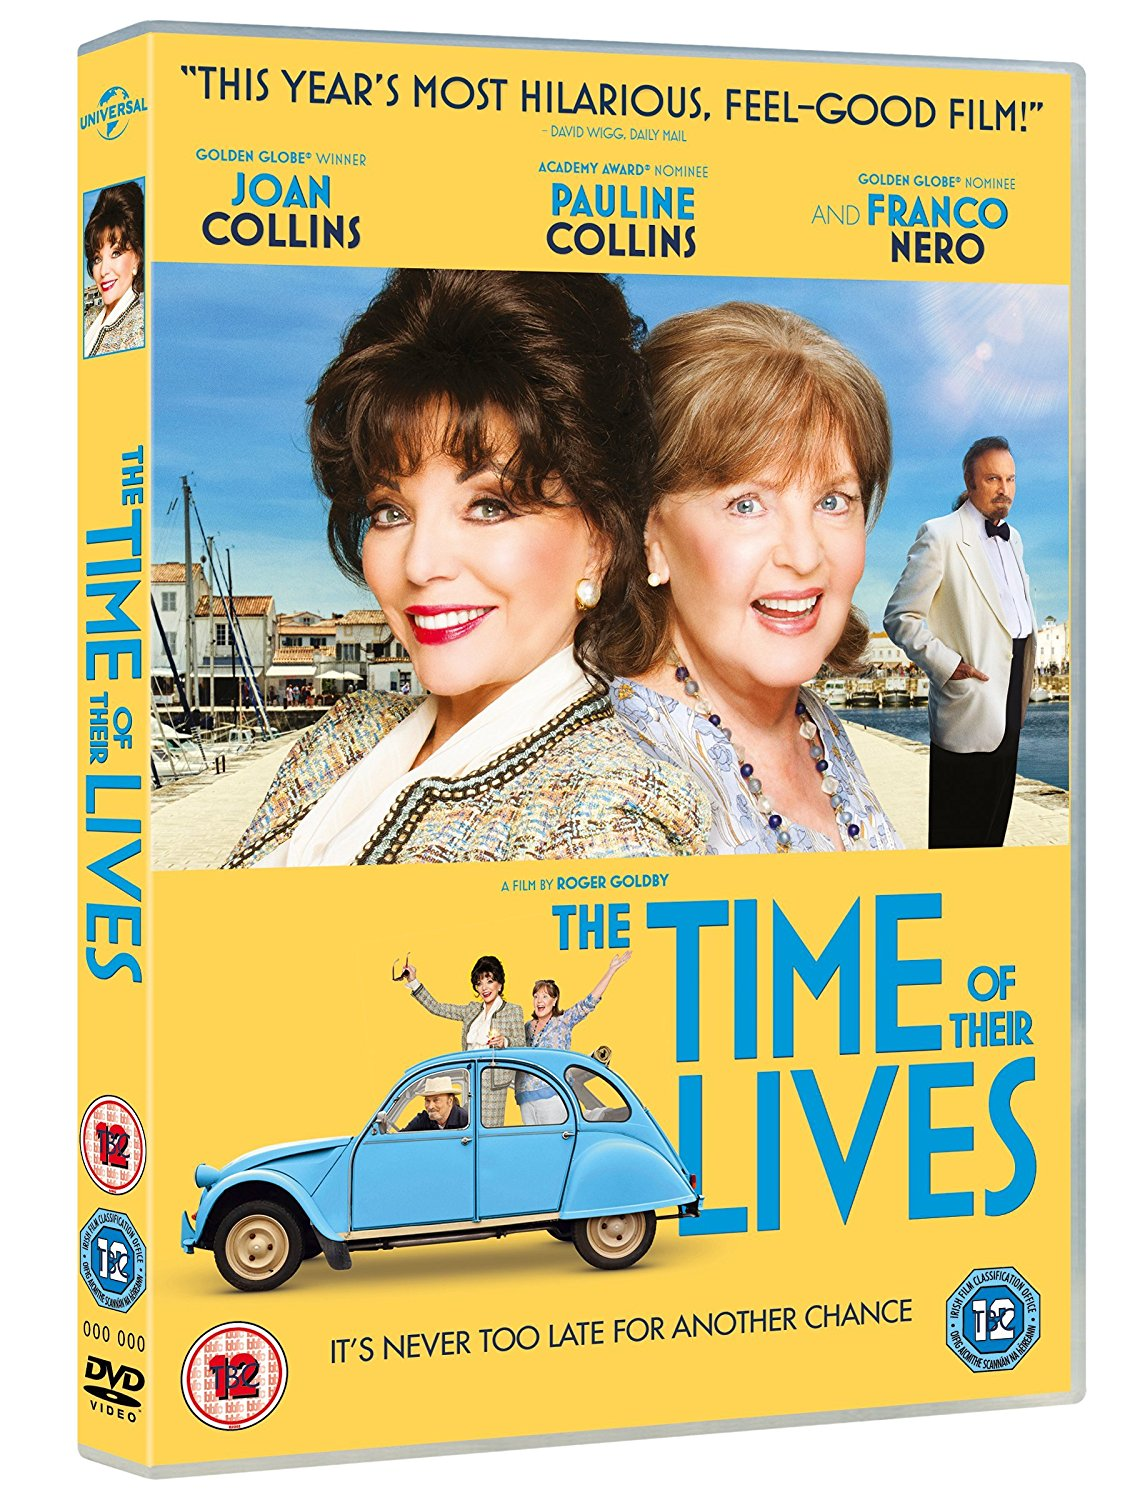 THE TIME OF THEIR LIVES DVD OUT JULY 31ST 2017!!